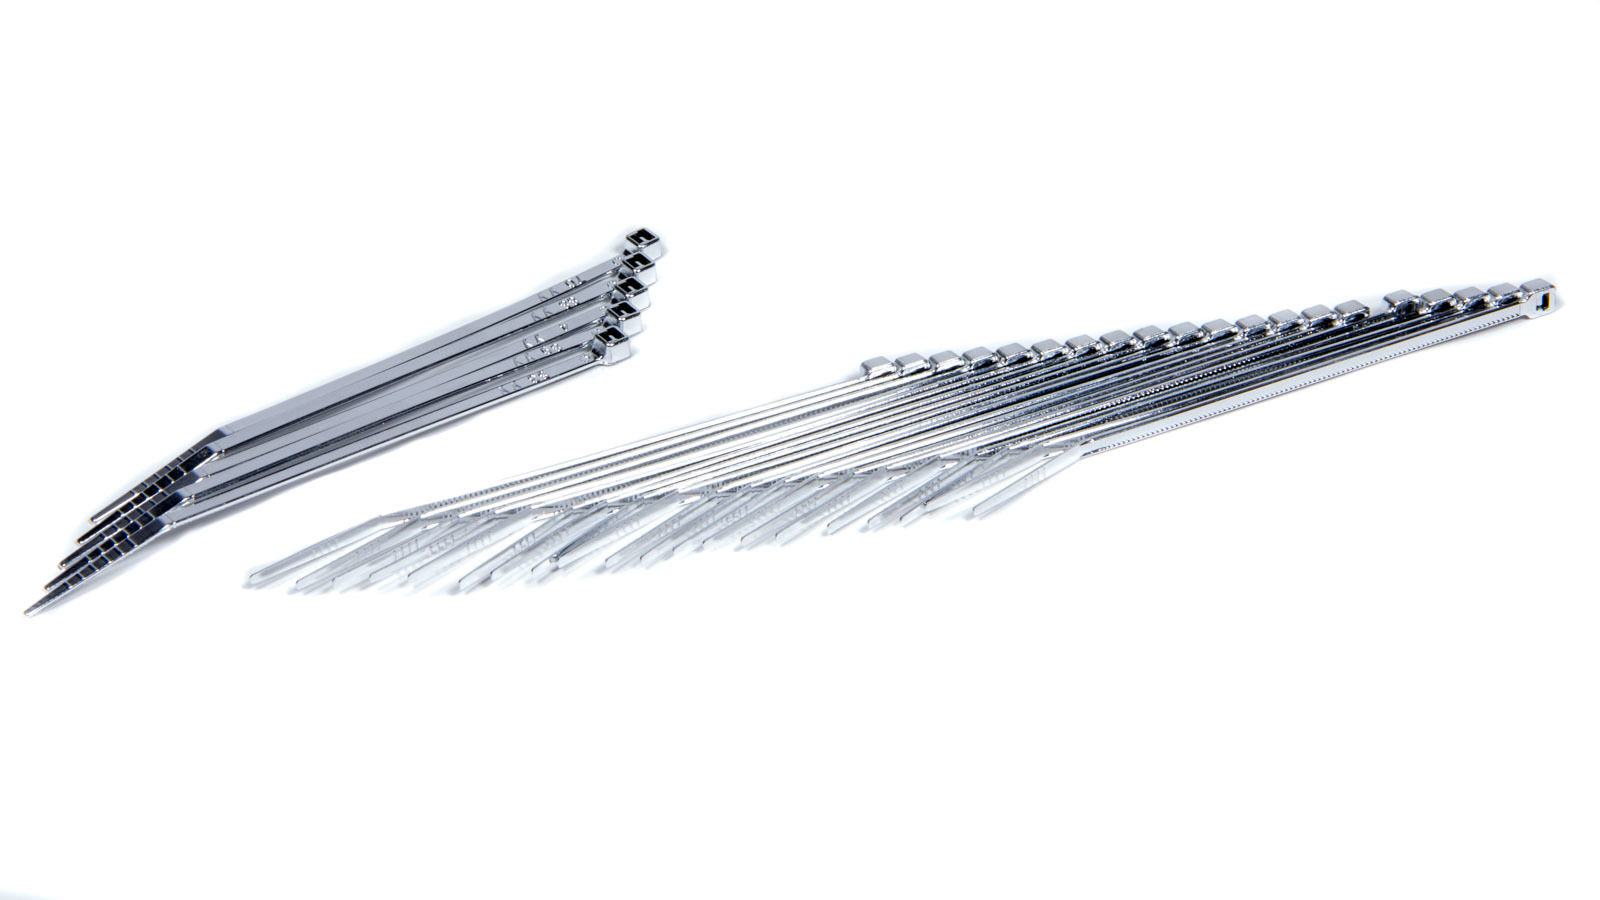 Taylor/vertex 4in Chrome Plated Wire Ties (25pk)